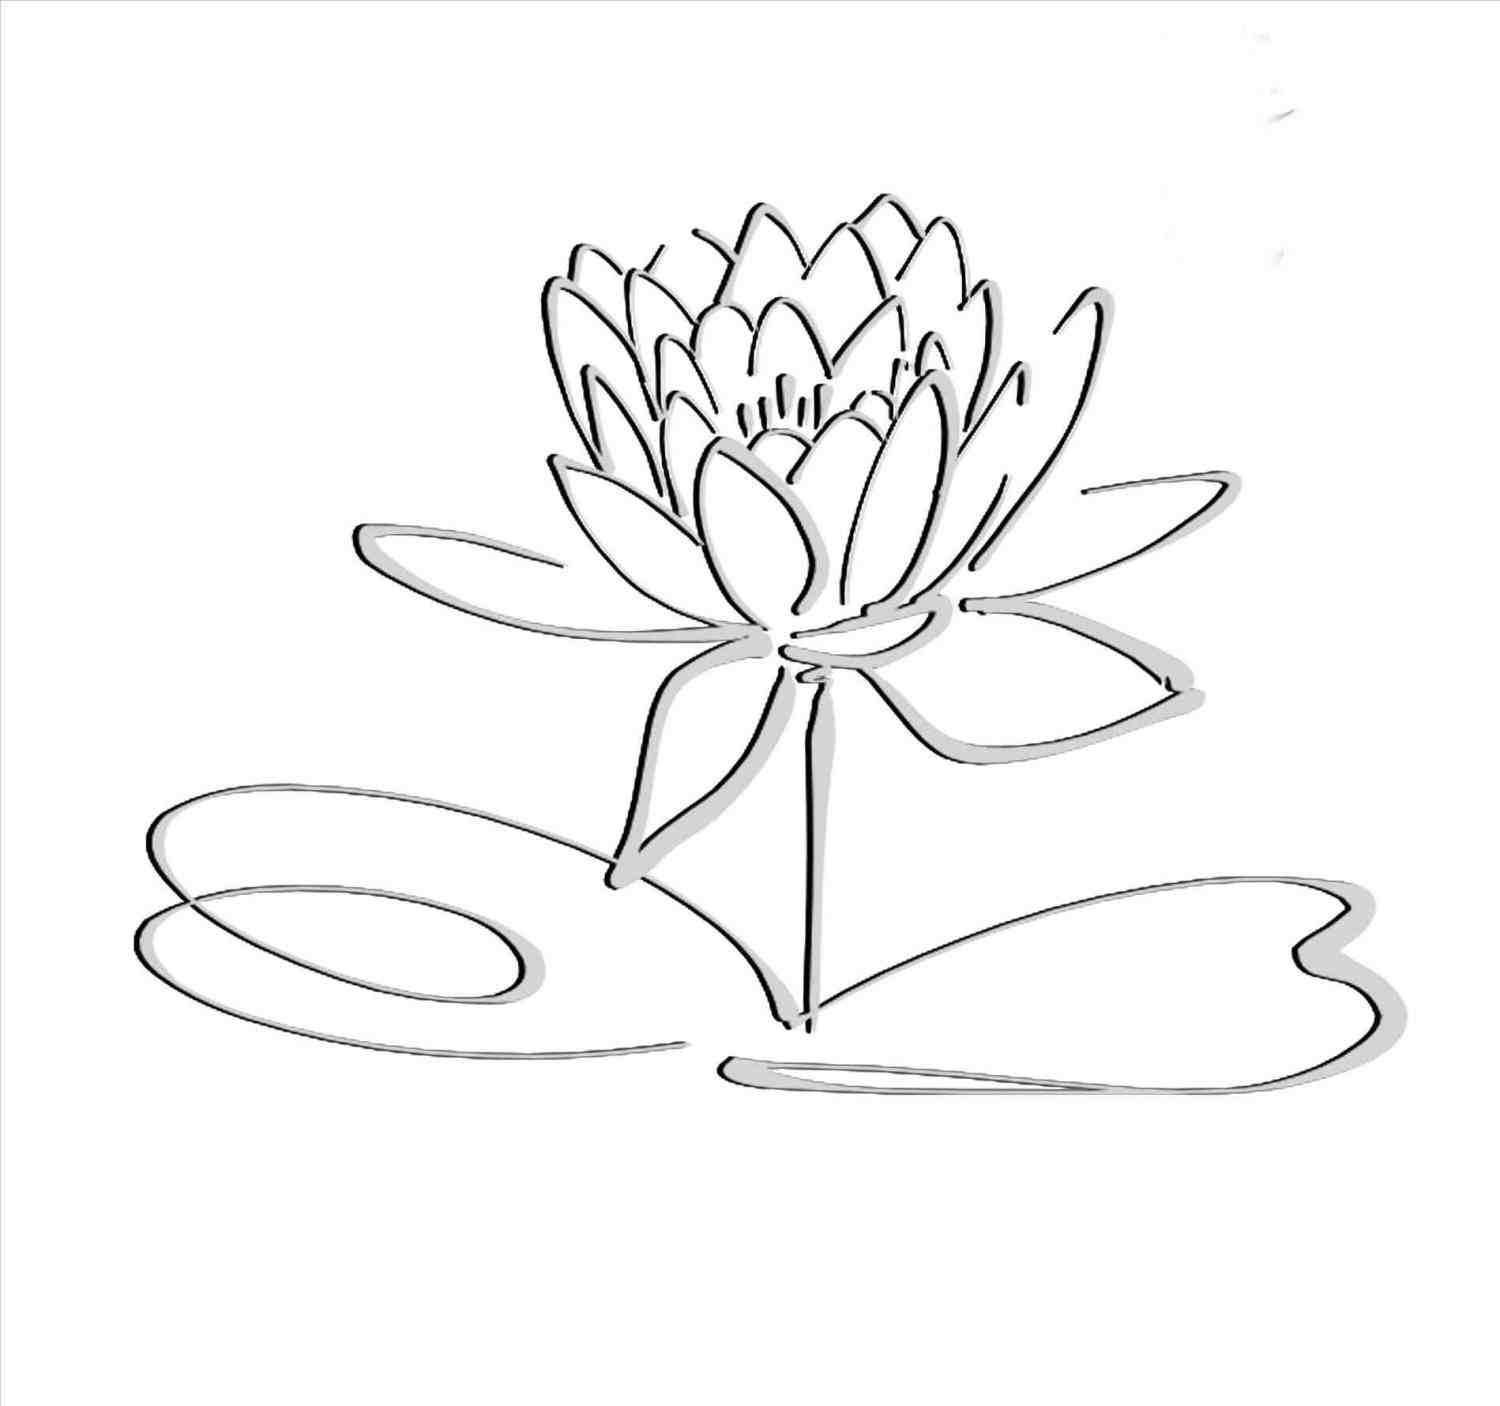 1500x1406 Drawing Ideas Easy Flowers Step By Step